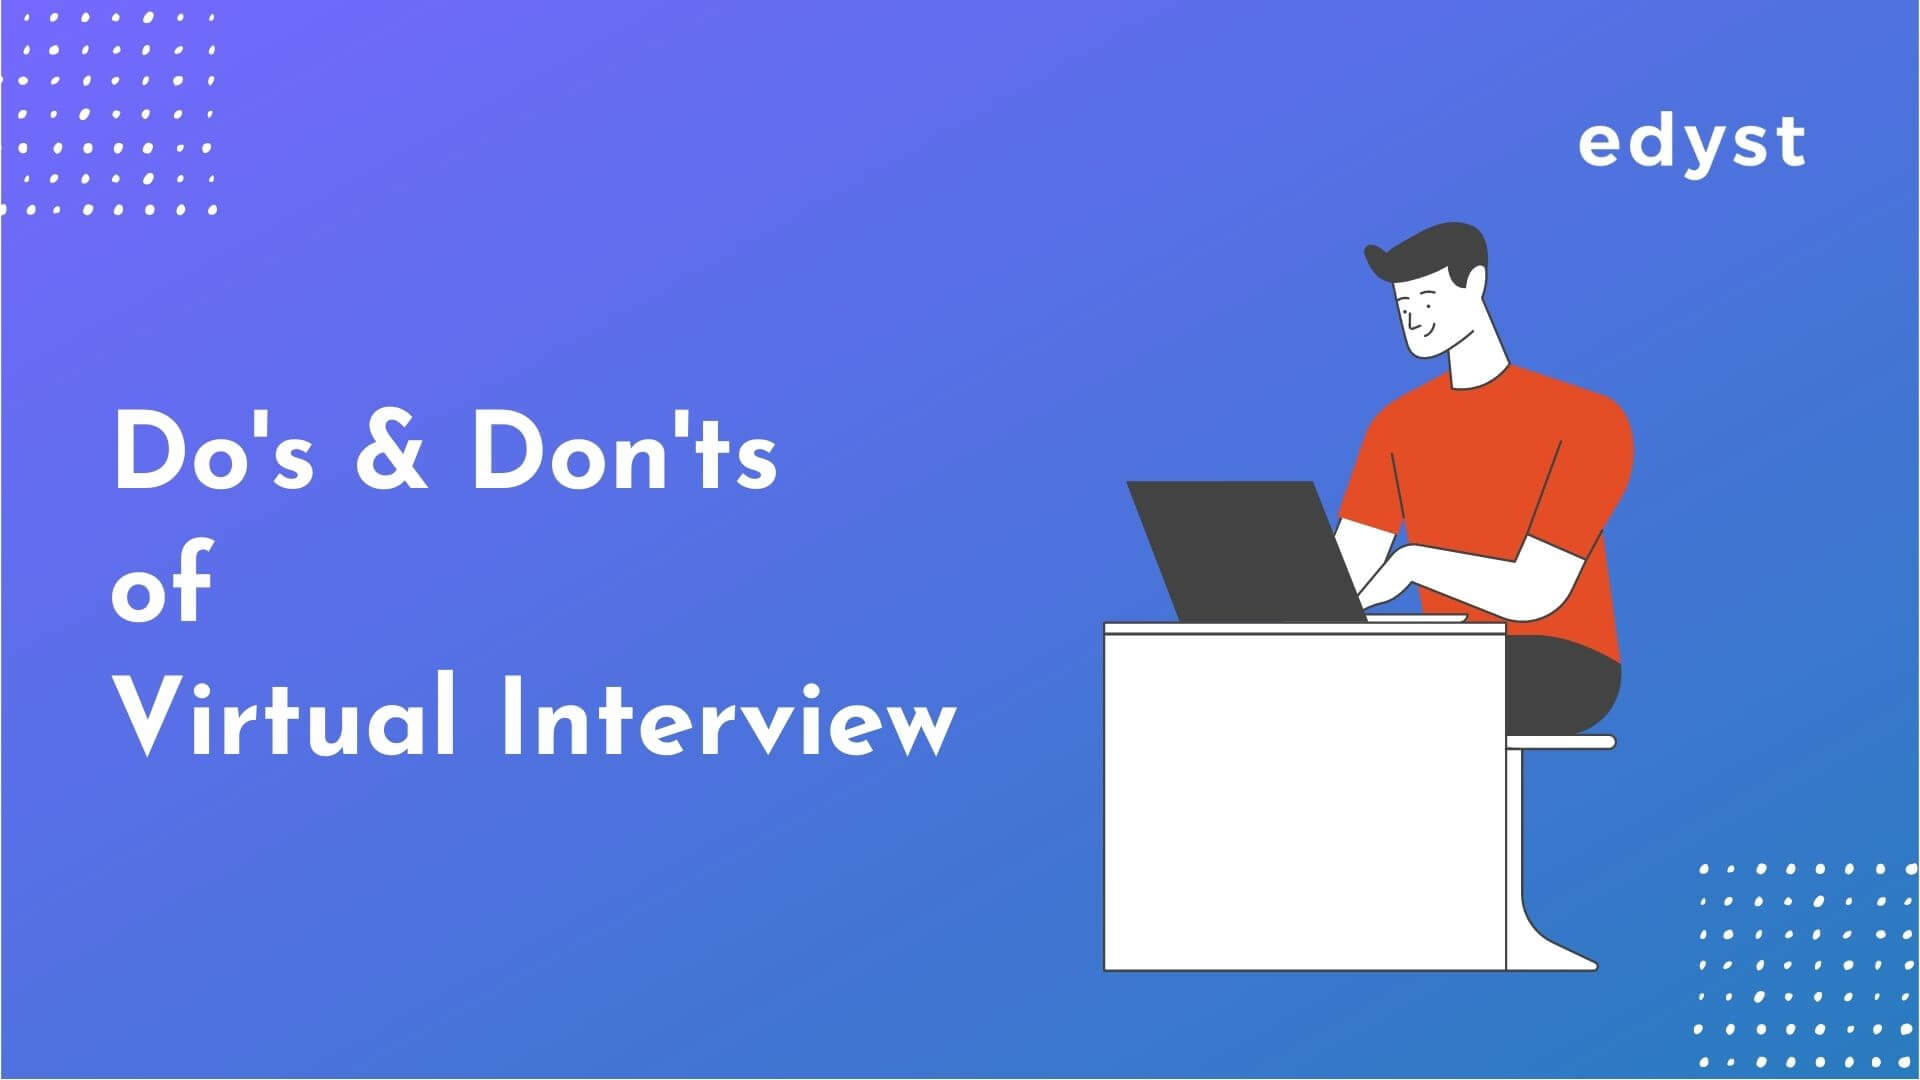 Do's & Don'ts of Virtual Interview